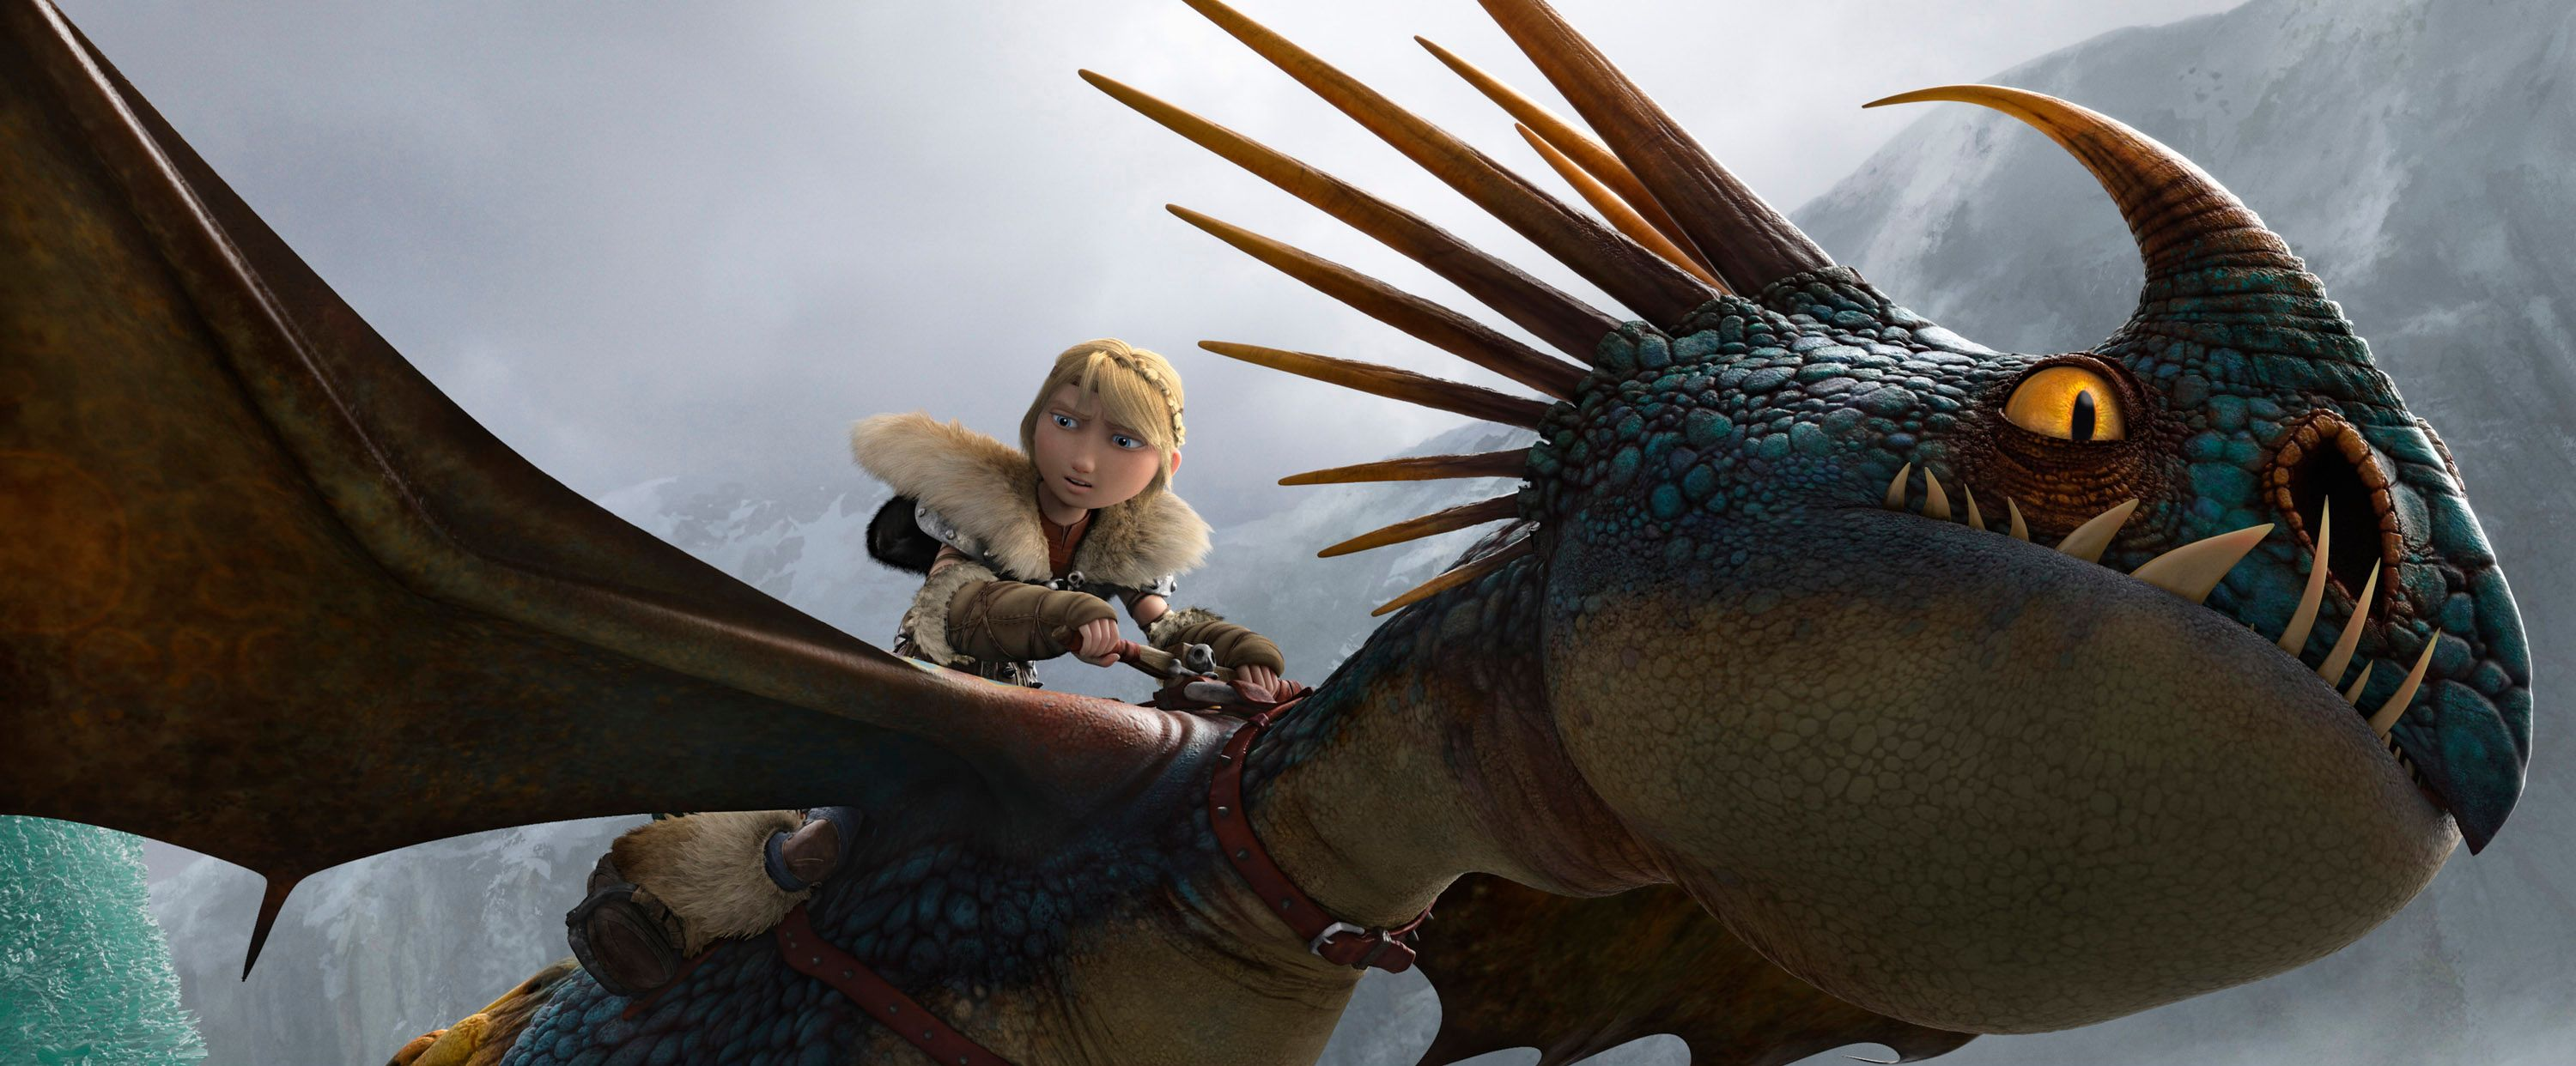 It's just an image of Influential Pictures of Dragons From How to Train Your Dragon